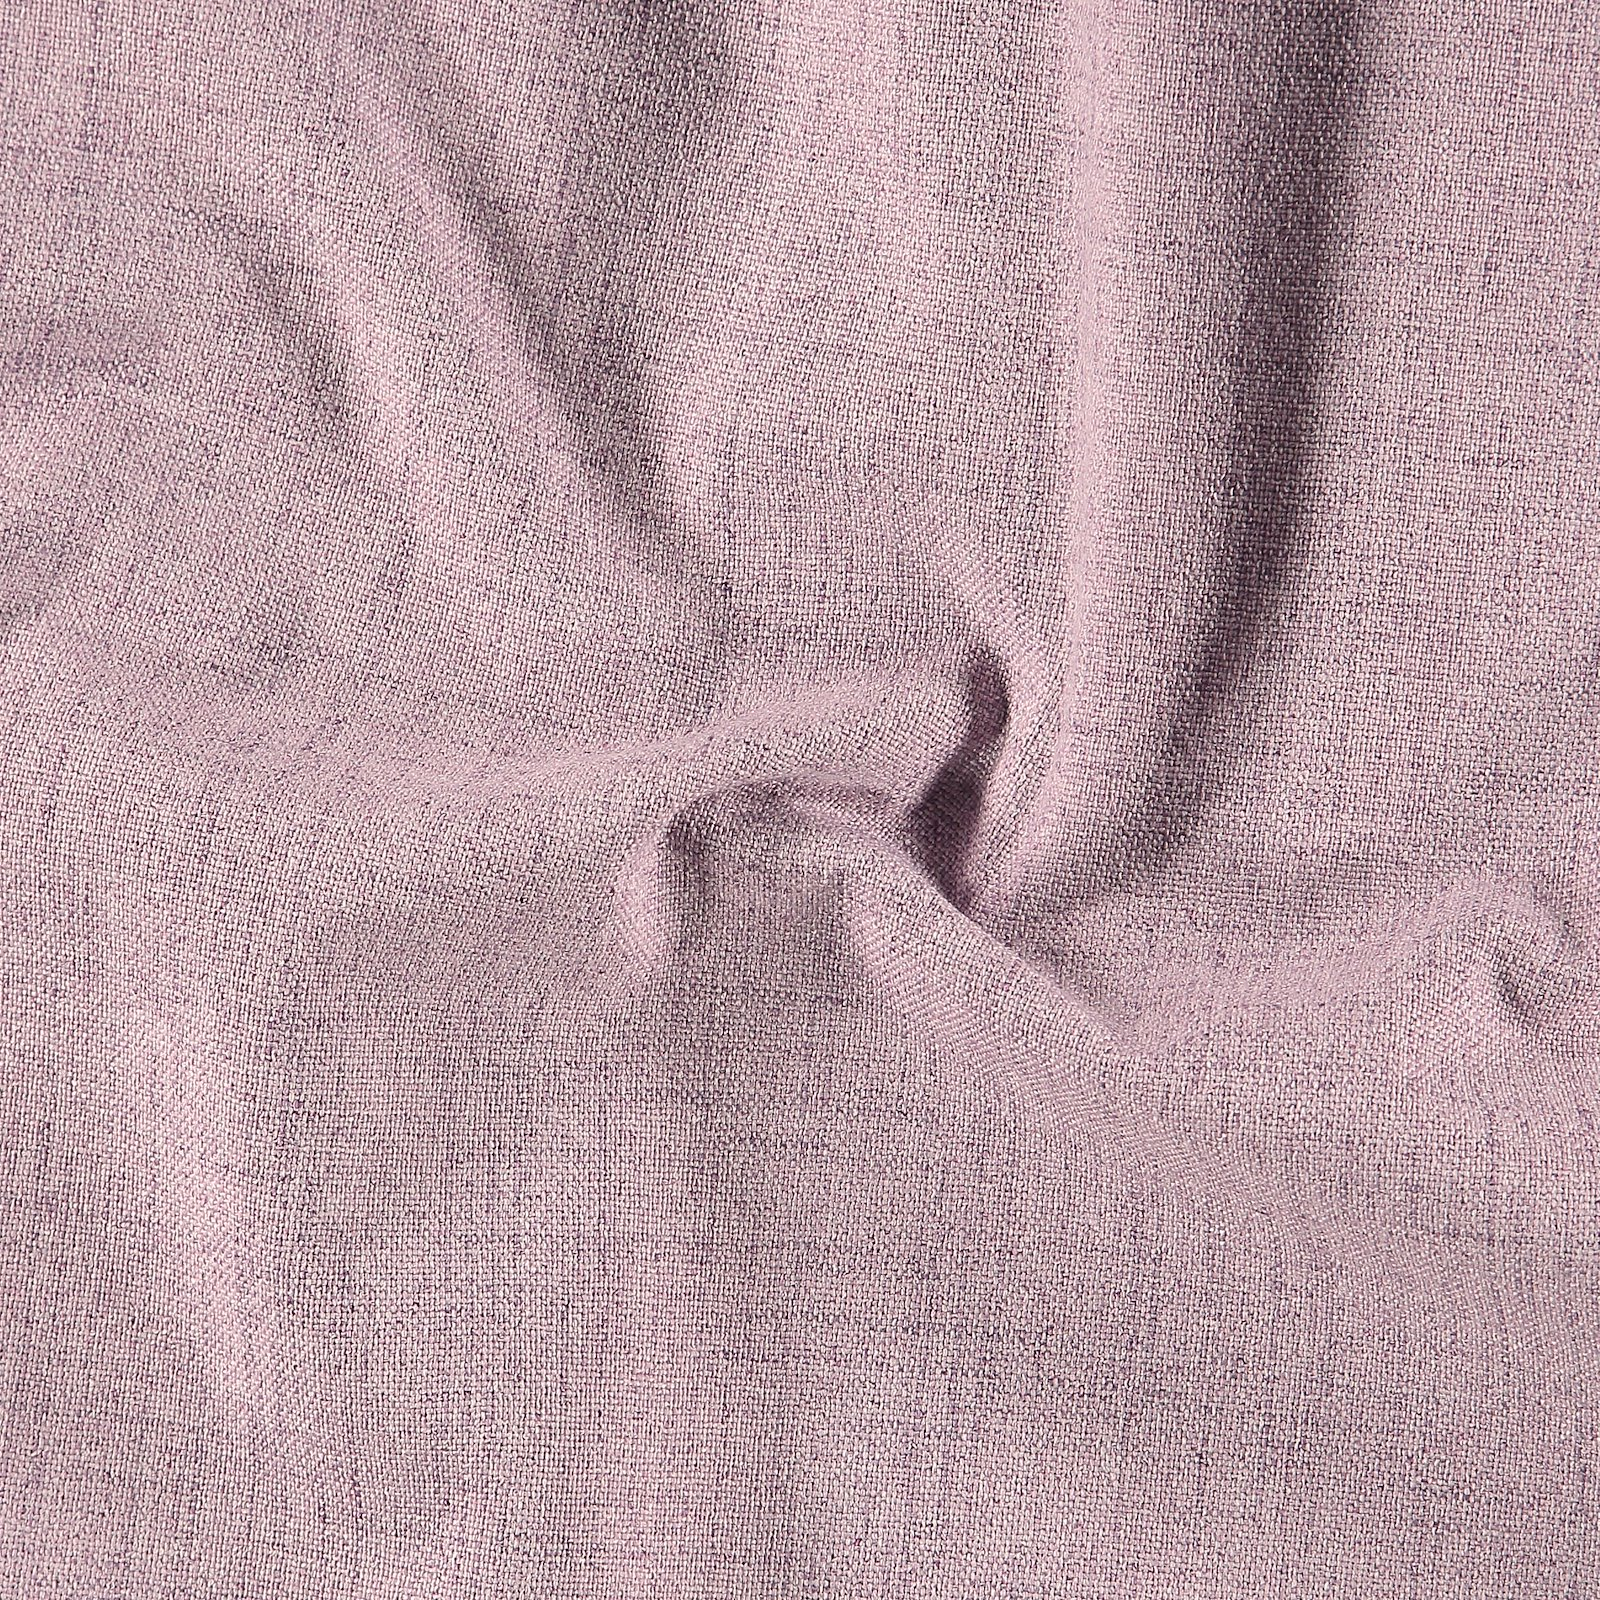 Upholstery fabric w/backing dusty violet